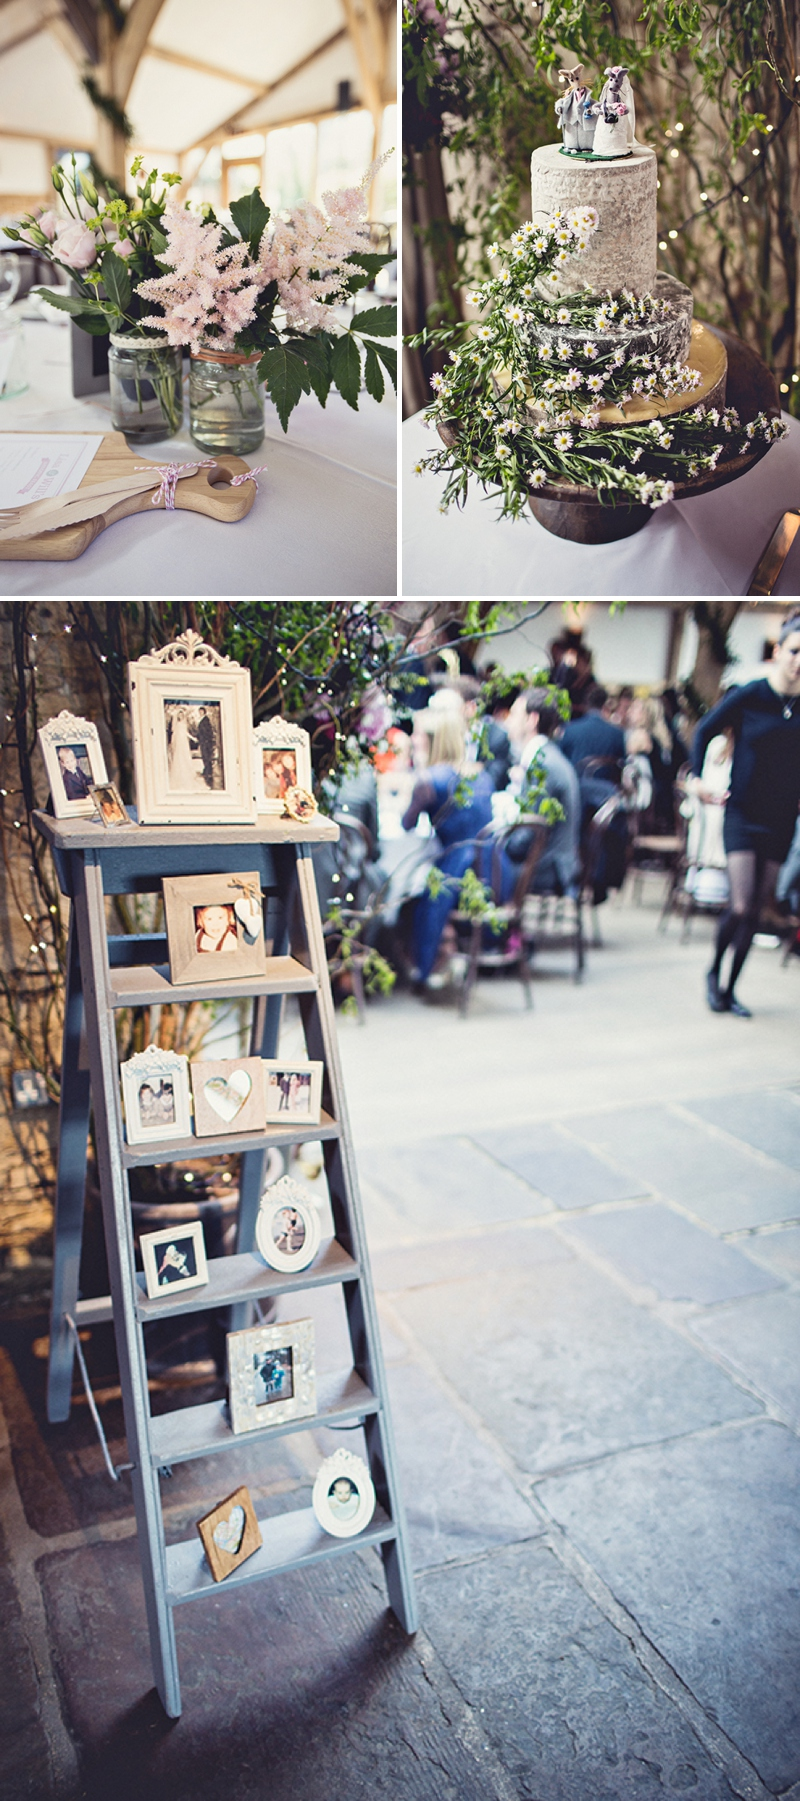 A pretty wedding at Cripps Barn by Anna Clarke photography with a lace pronovias dress_0315